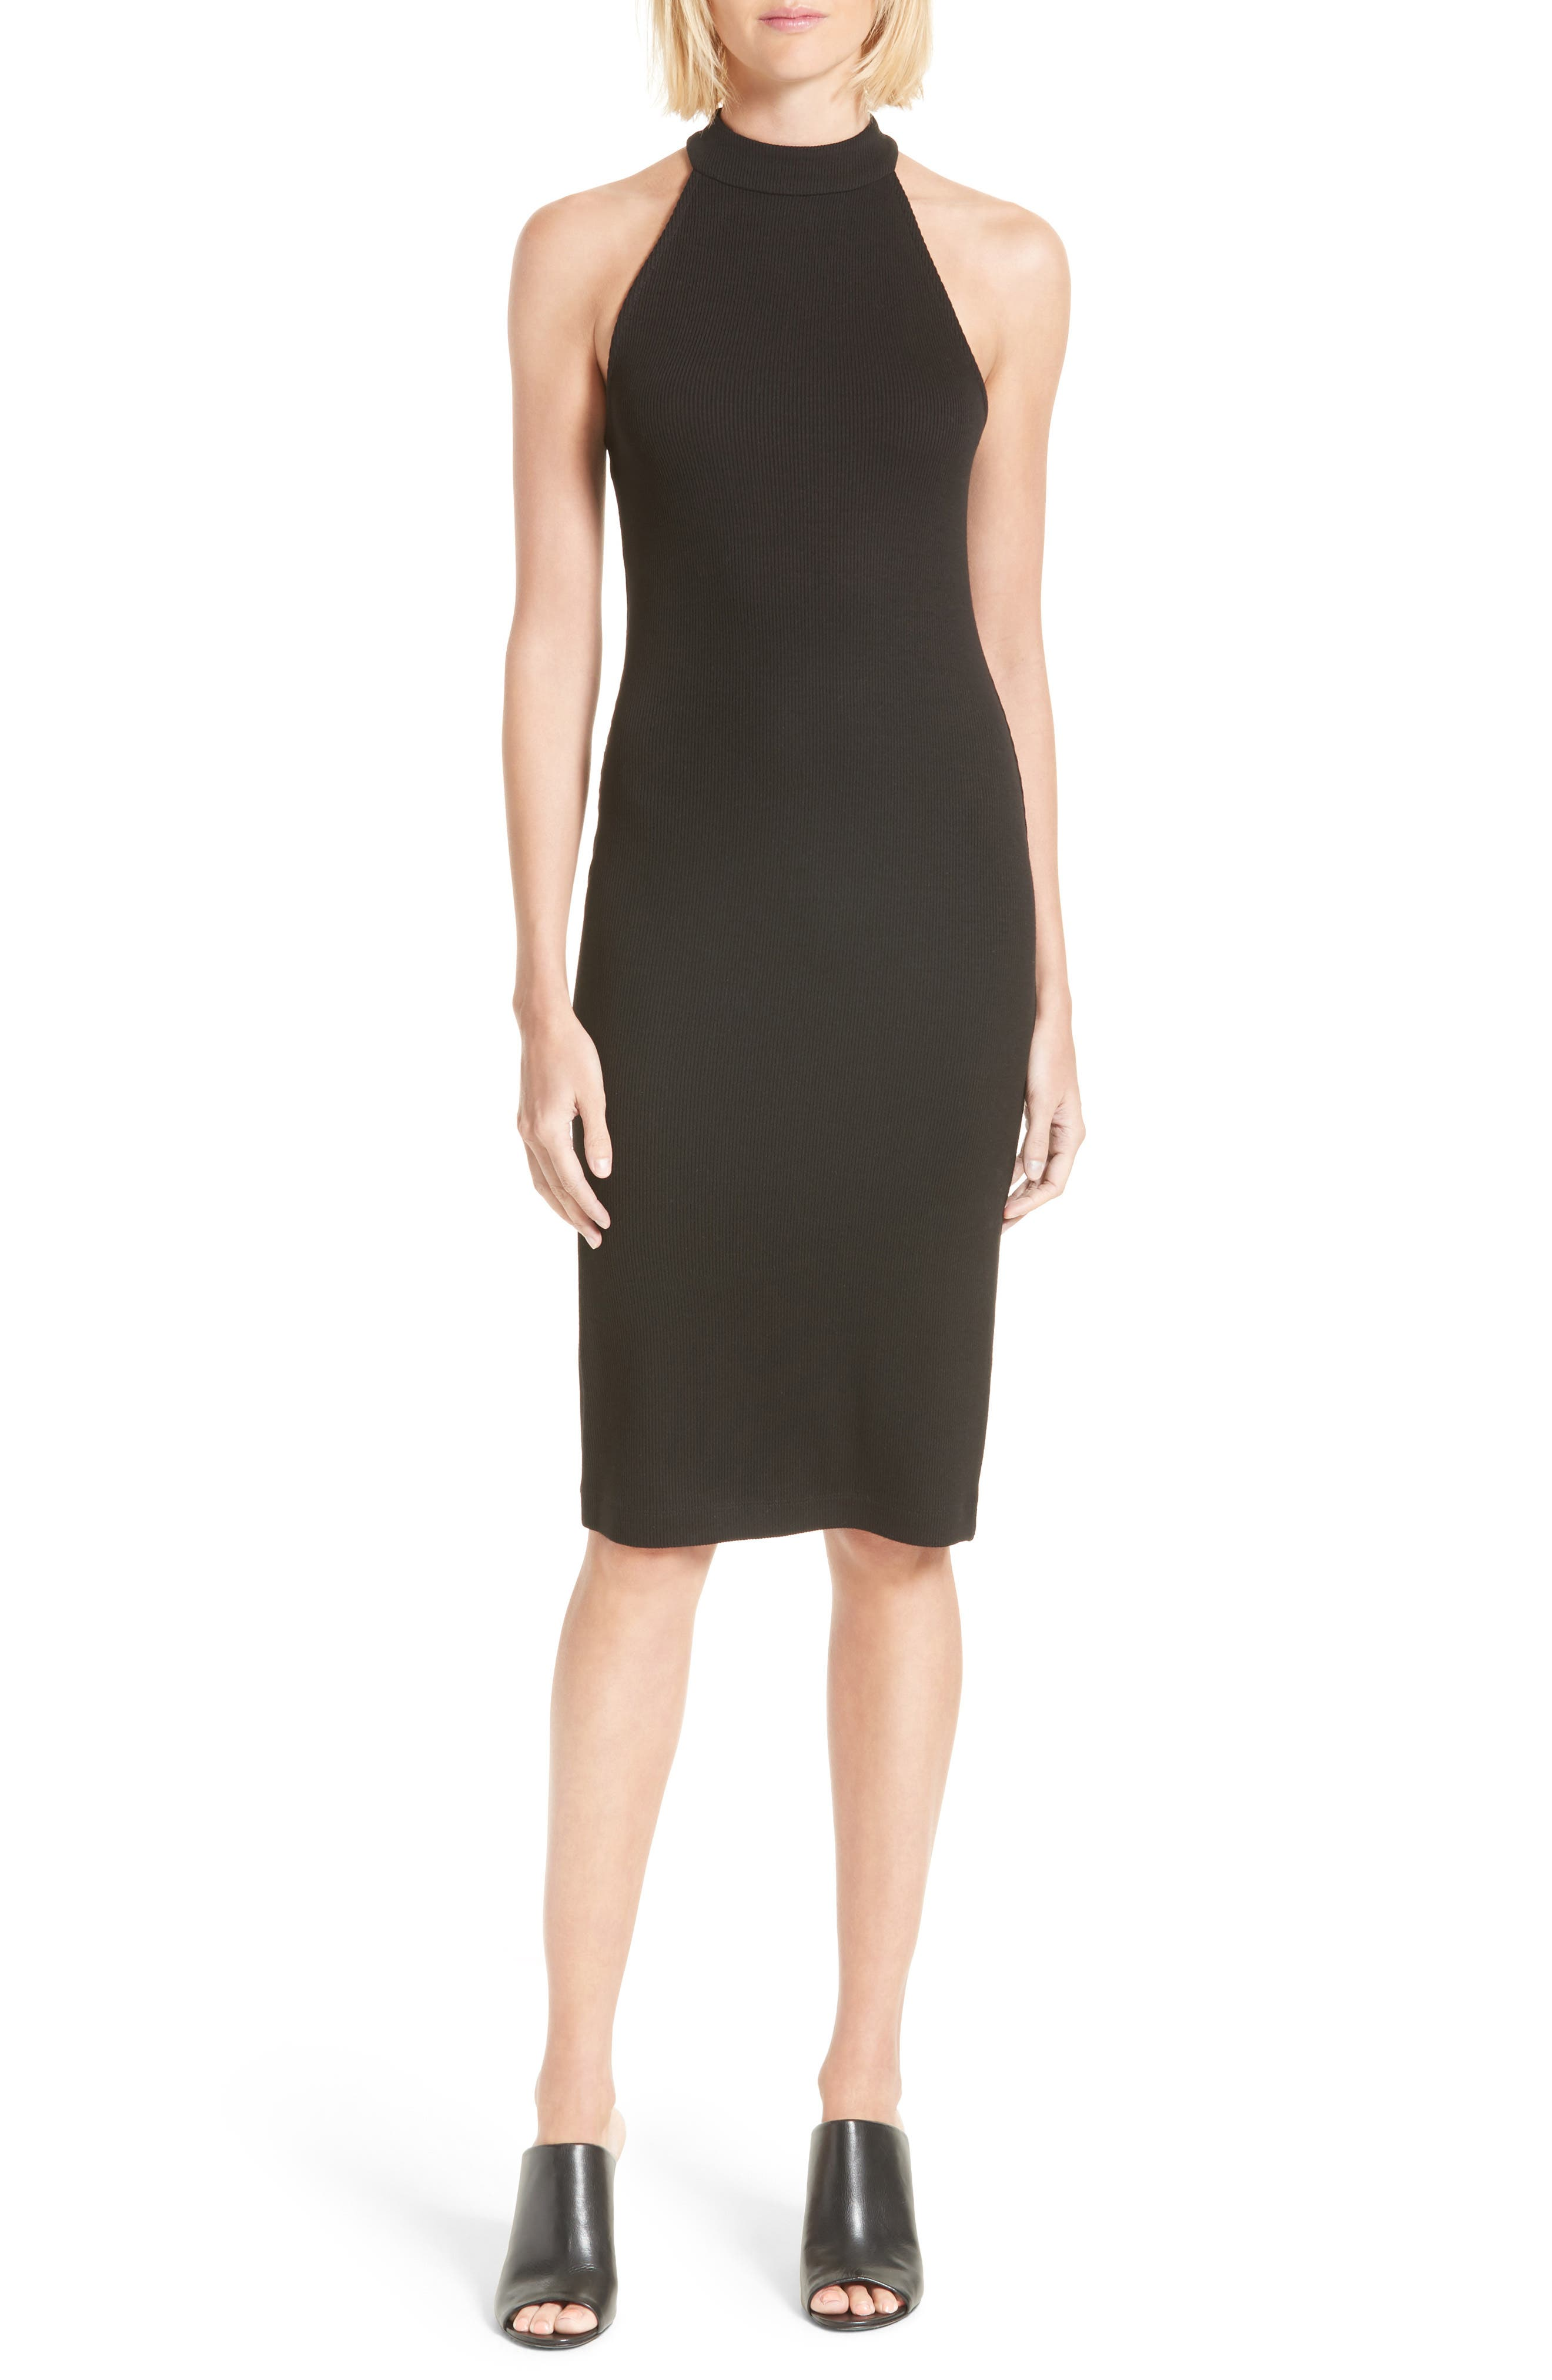 L'AGENCE Iman Mock Neck Dress